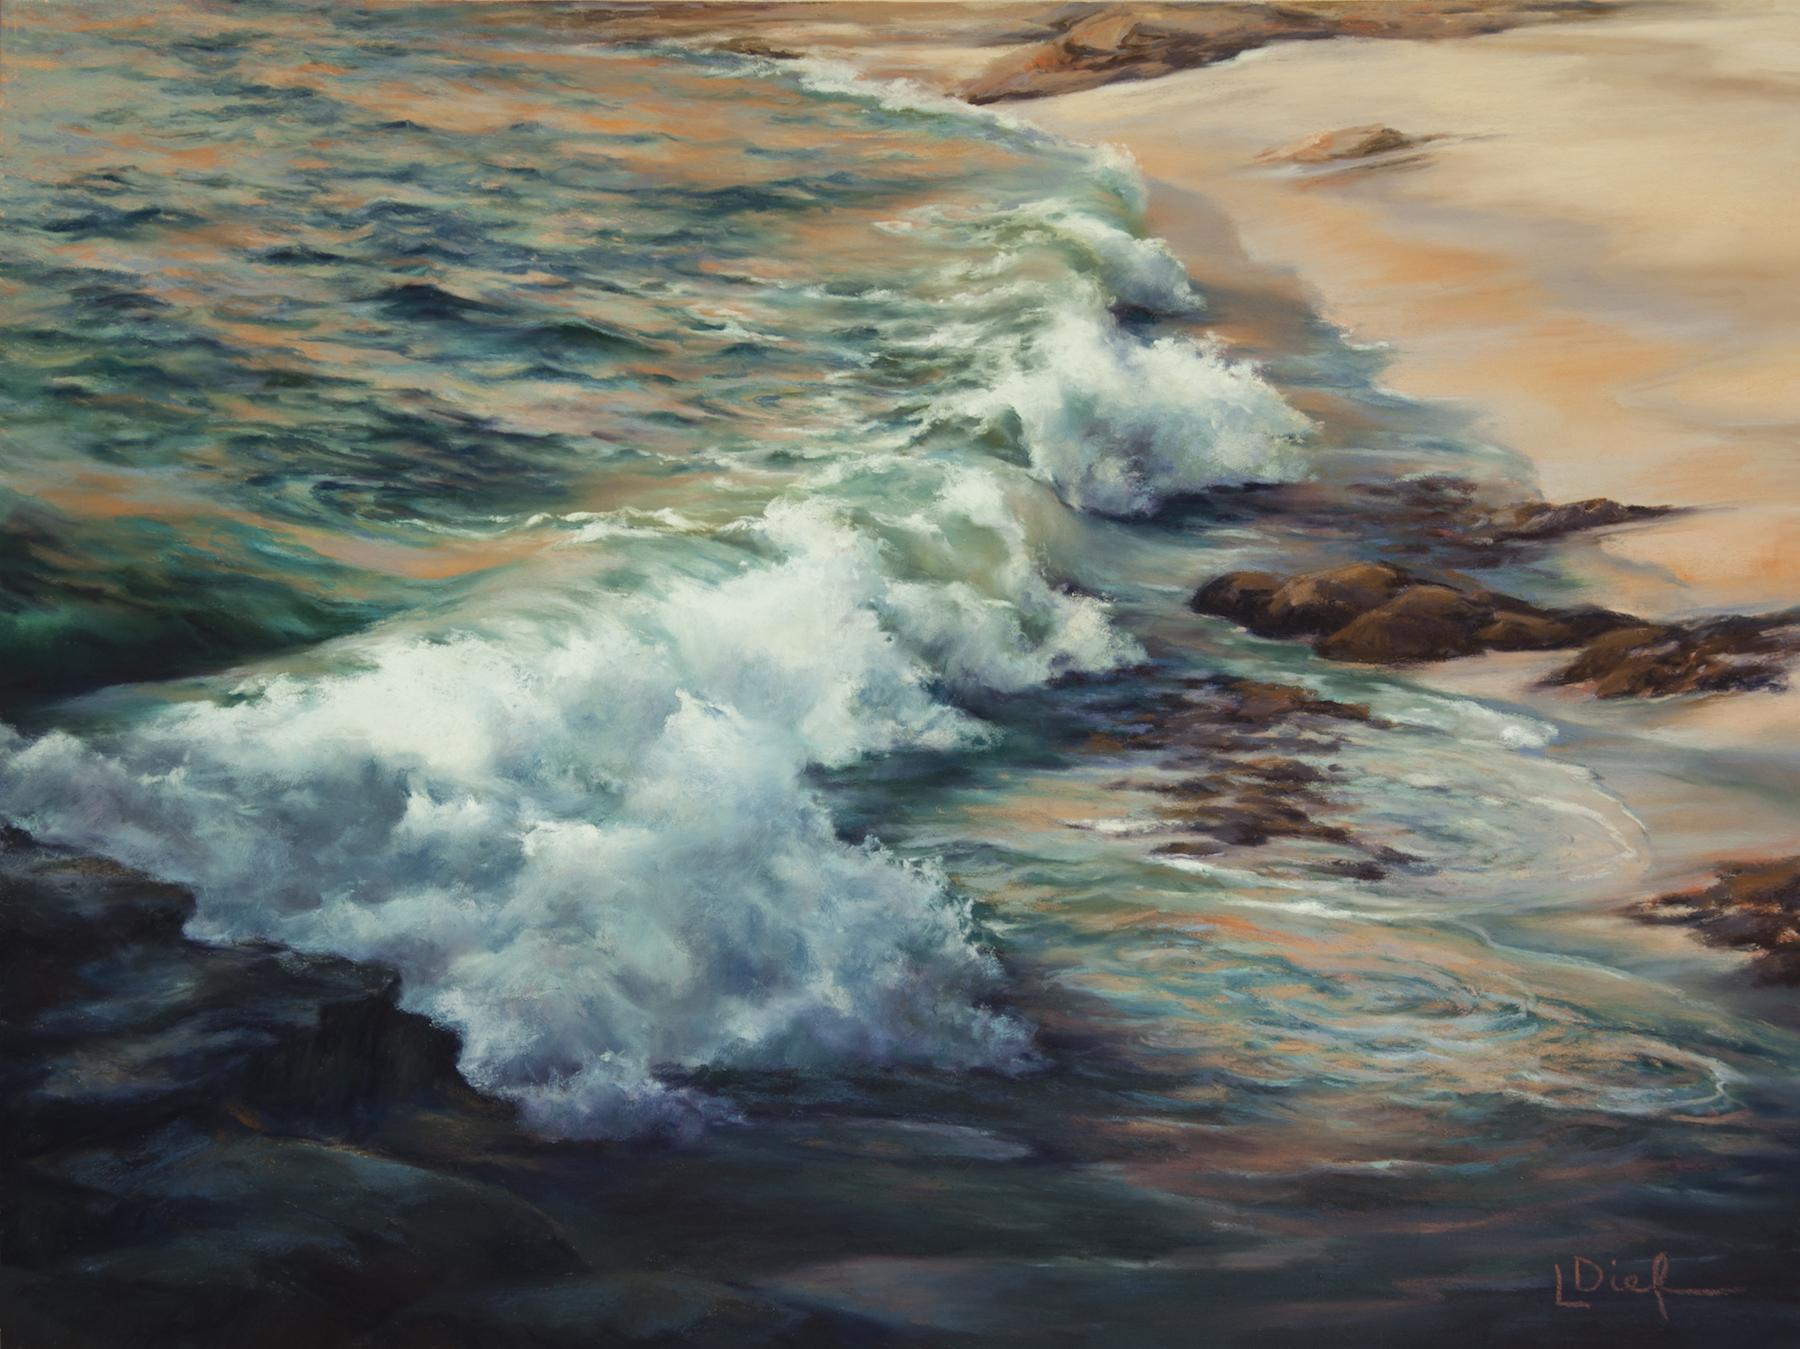 """Lyn Diefenbach, """"Last Light,"""" Feb 2016, Pastel on Ampersand Pastelbord, 18 x 30 in. Sold. Colour and action – what could be better?"""